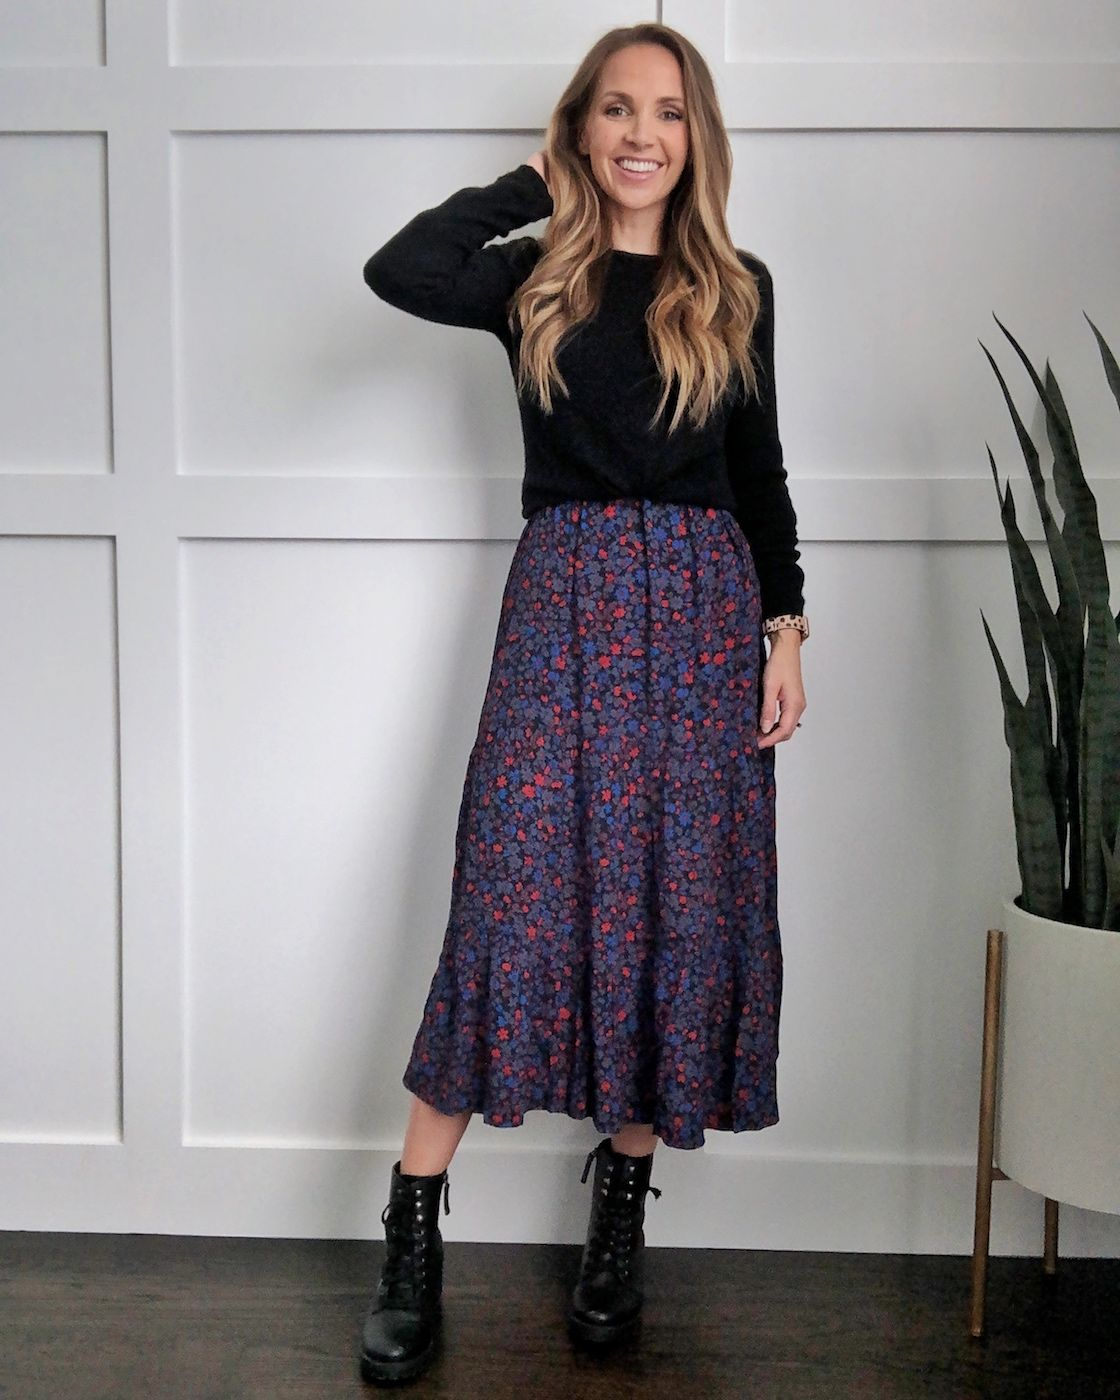 How To Wear A Midi Dress In The Fall Merrick S Art Midi Dress Outfit Midi Dress Winter Layer Dress Outfit [ 1400 x 1120 Pixel ]